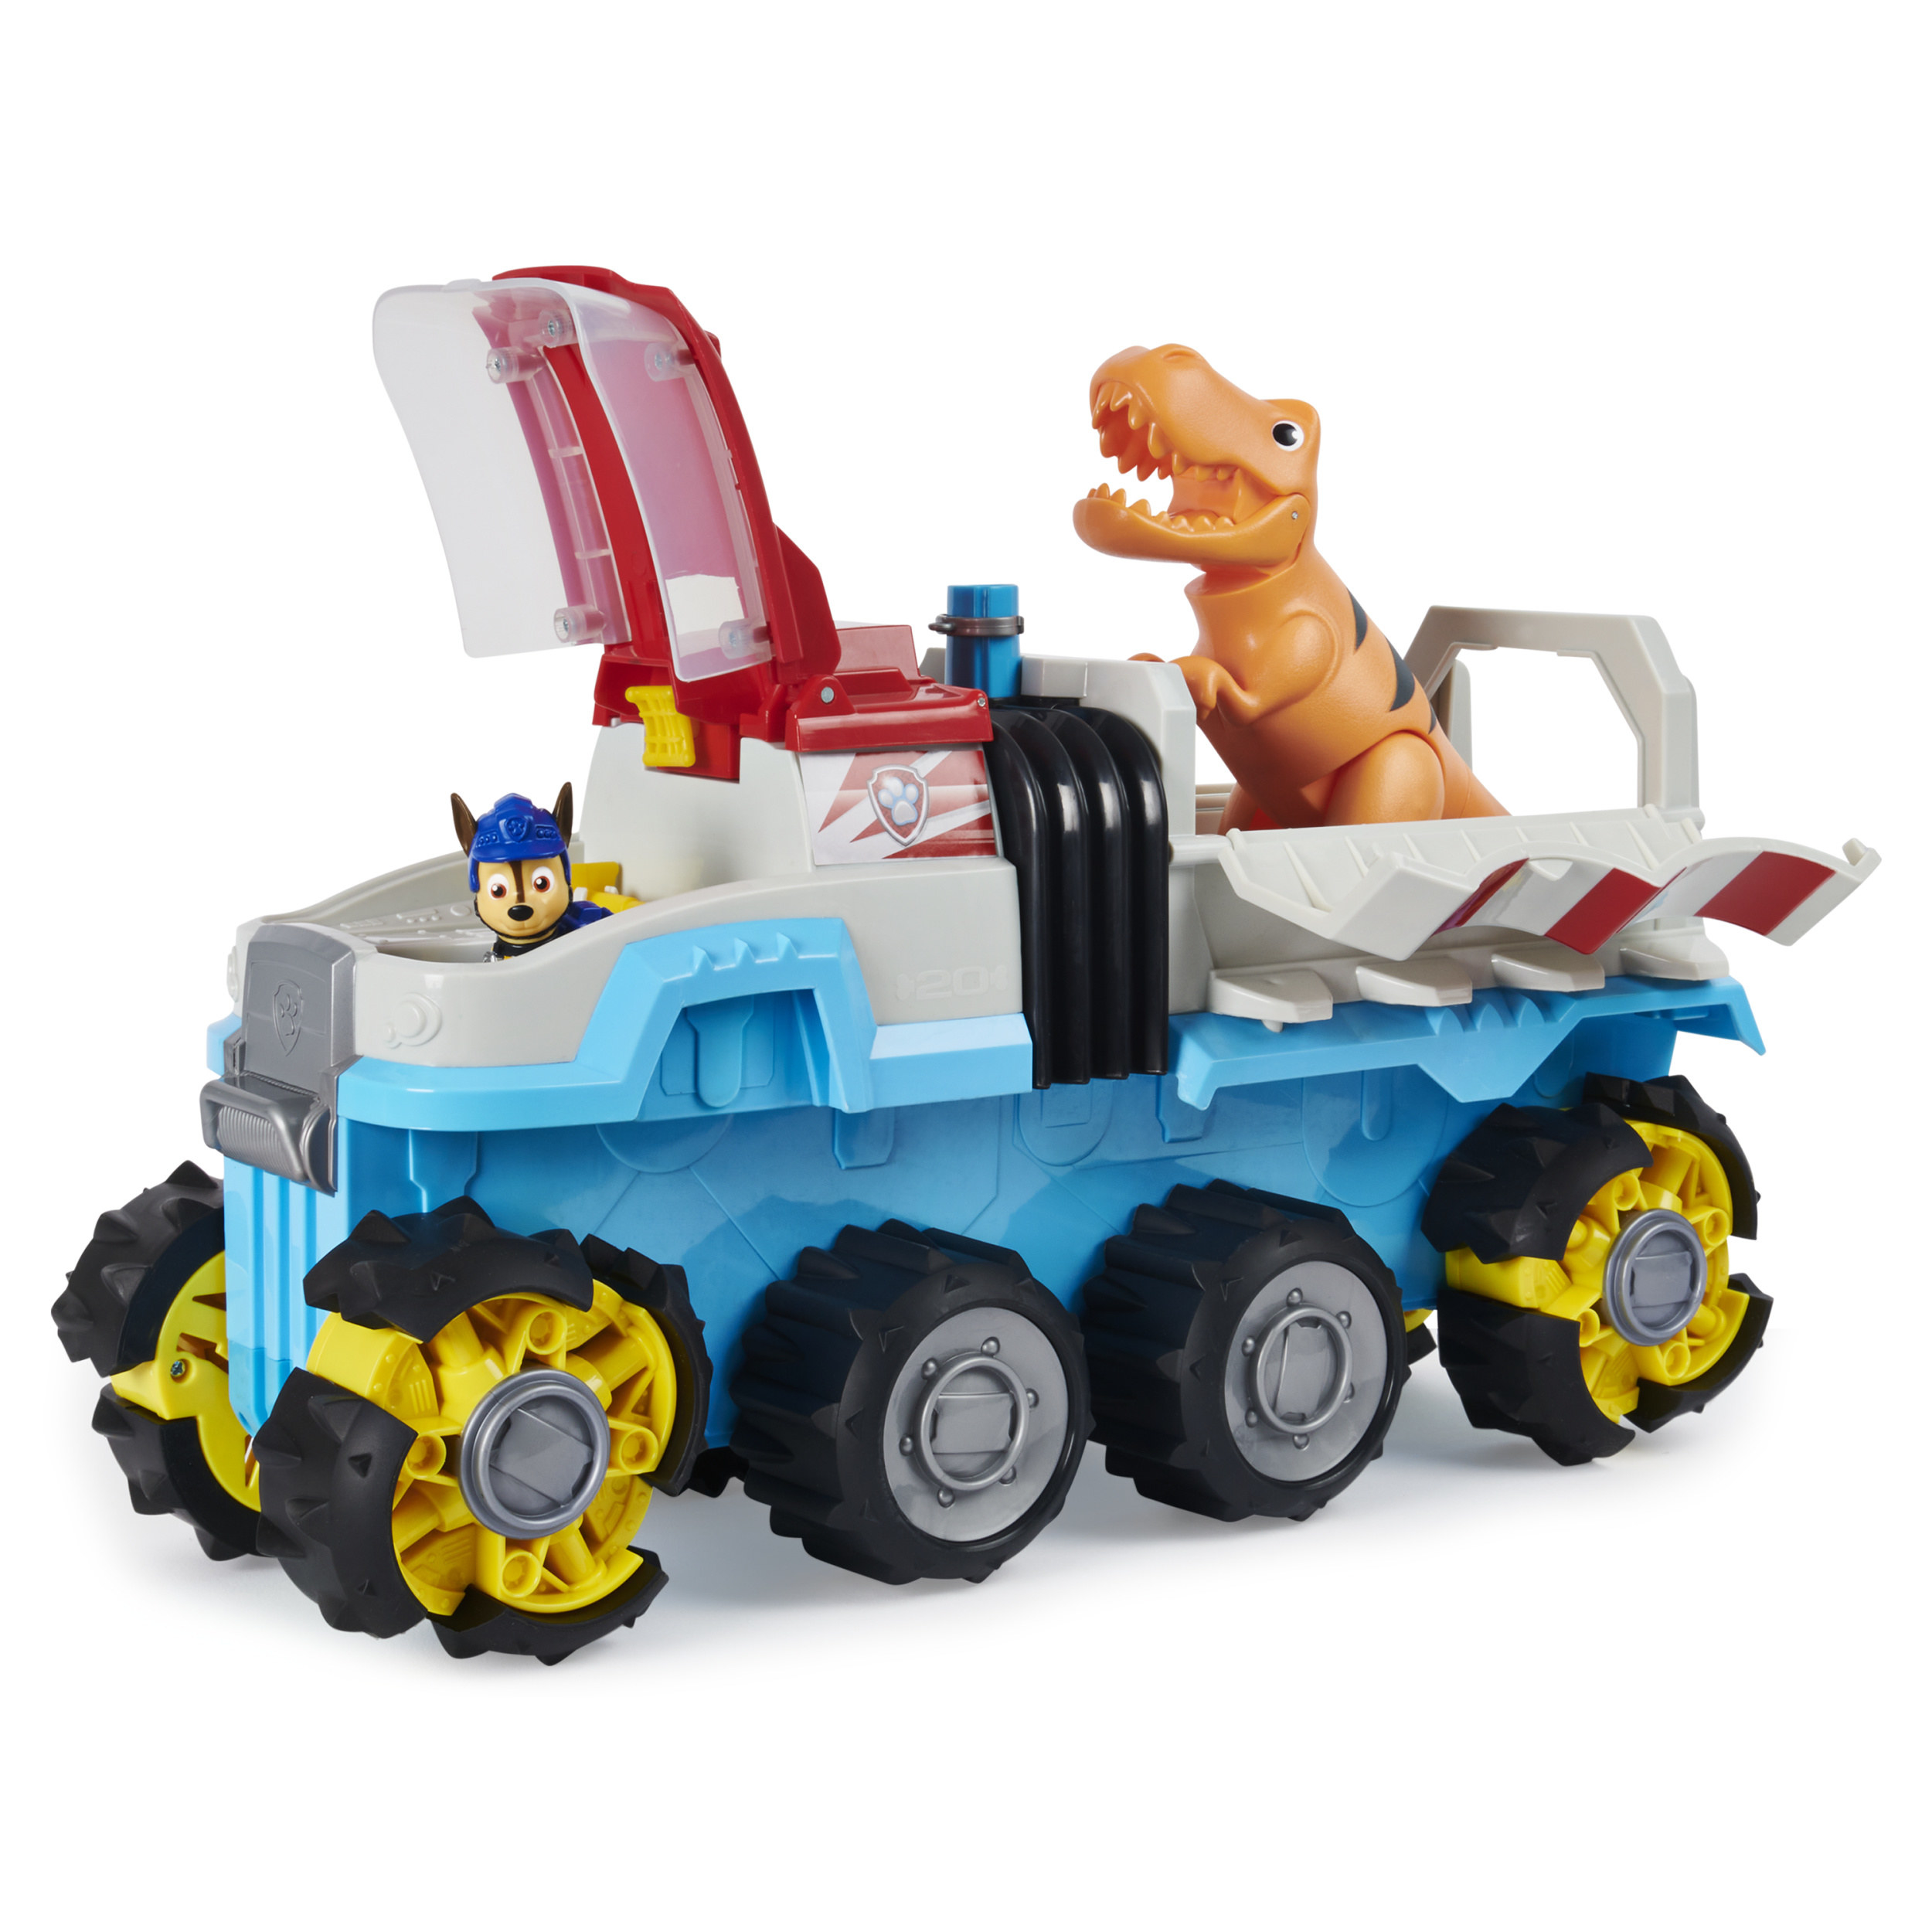 Motorized Paw Patrol vehicle with small dog figure in the front and T-rex figure in the back